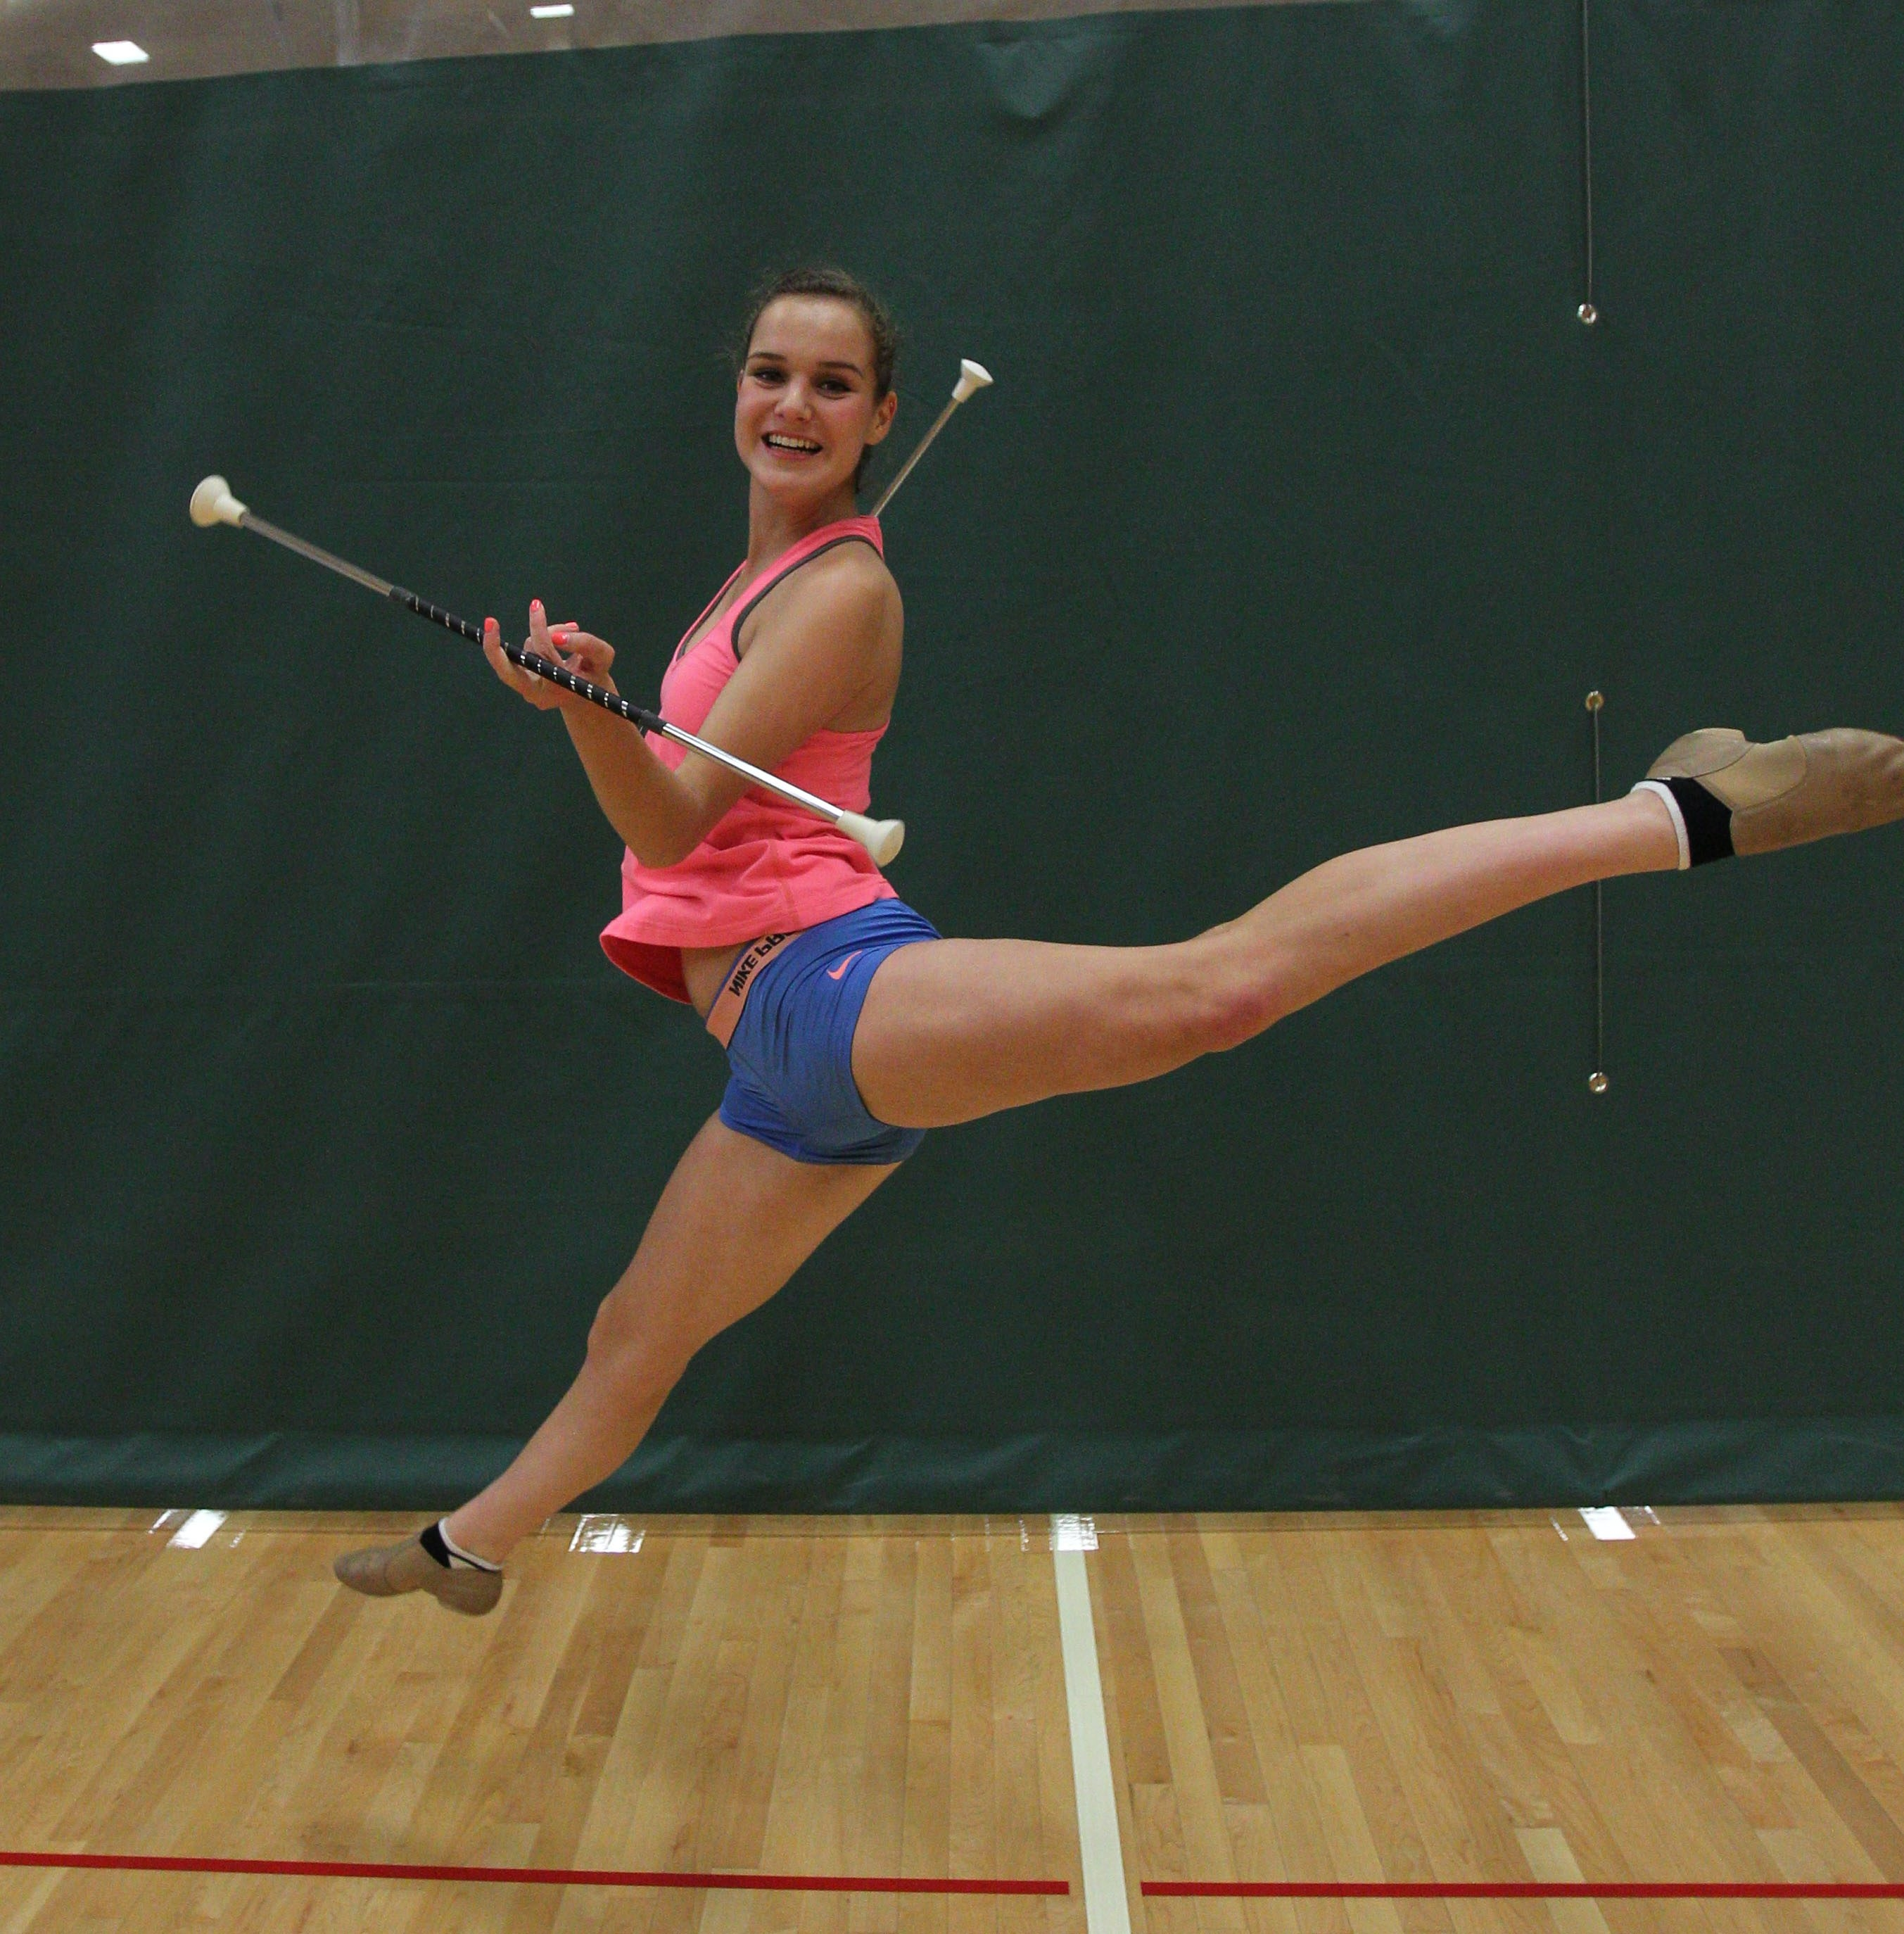 Bailee Russell, 16, practices her baton twirling routine for the upcoming trip to Peru this week. She will join 11 other U.S. twirlers for the International Festival of Springtime in Trujillo, a trip her mother and sister also made whey they were her age.